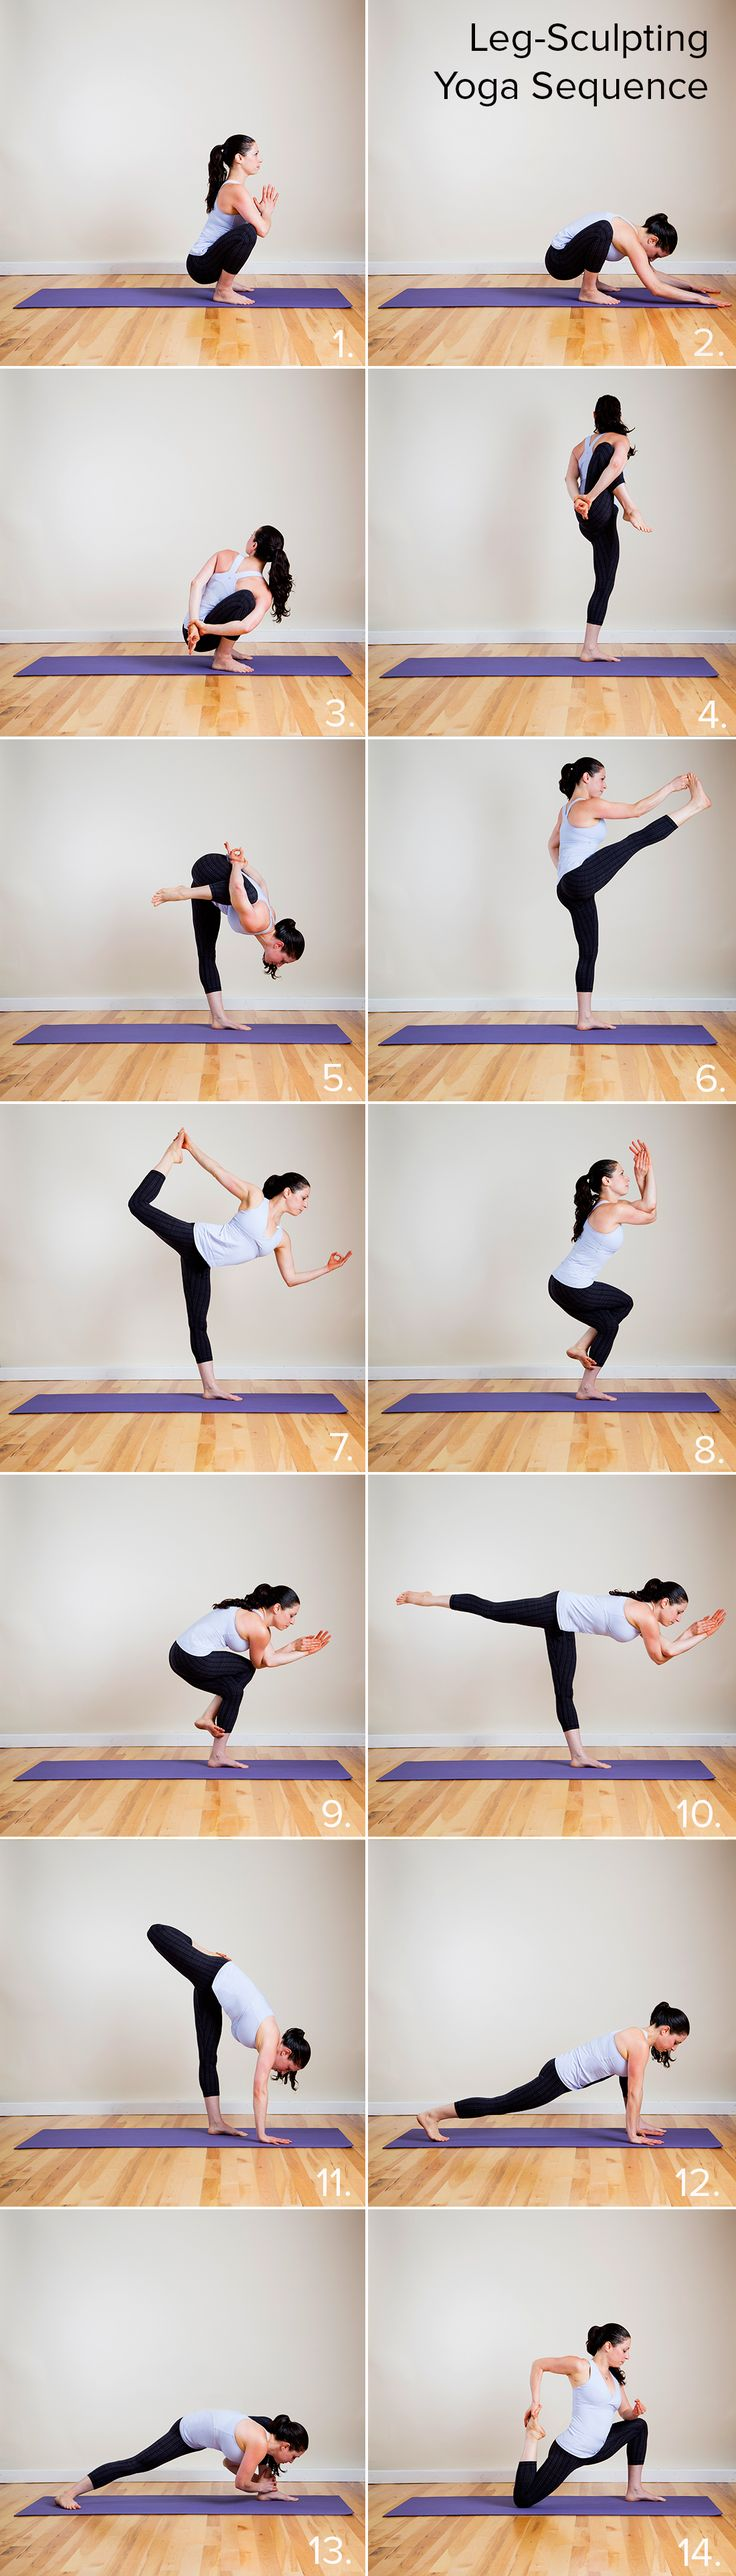 Yoga sequences for hot legs! It's full of standing poses to work your thighs from all angles.